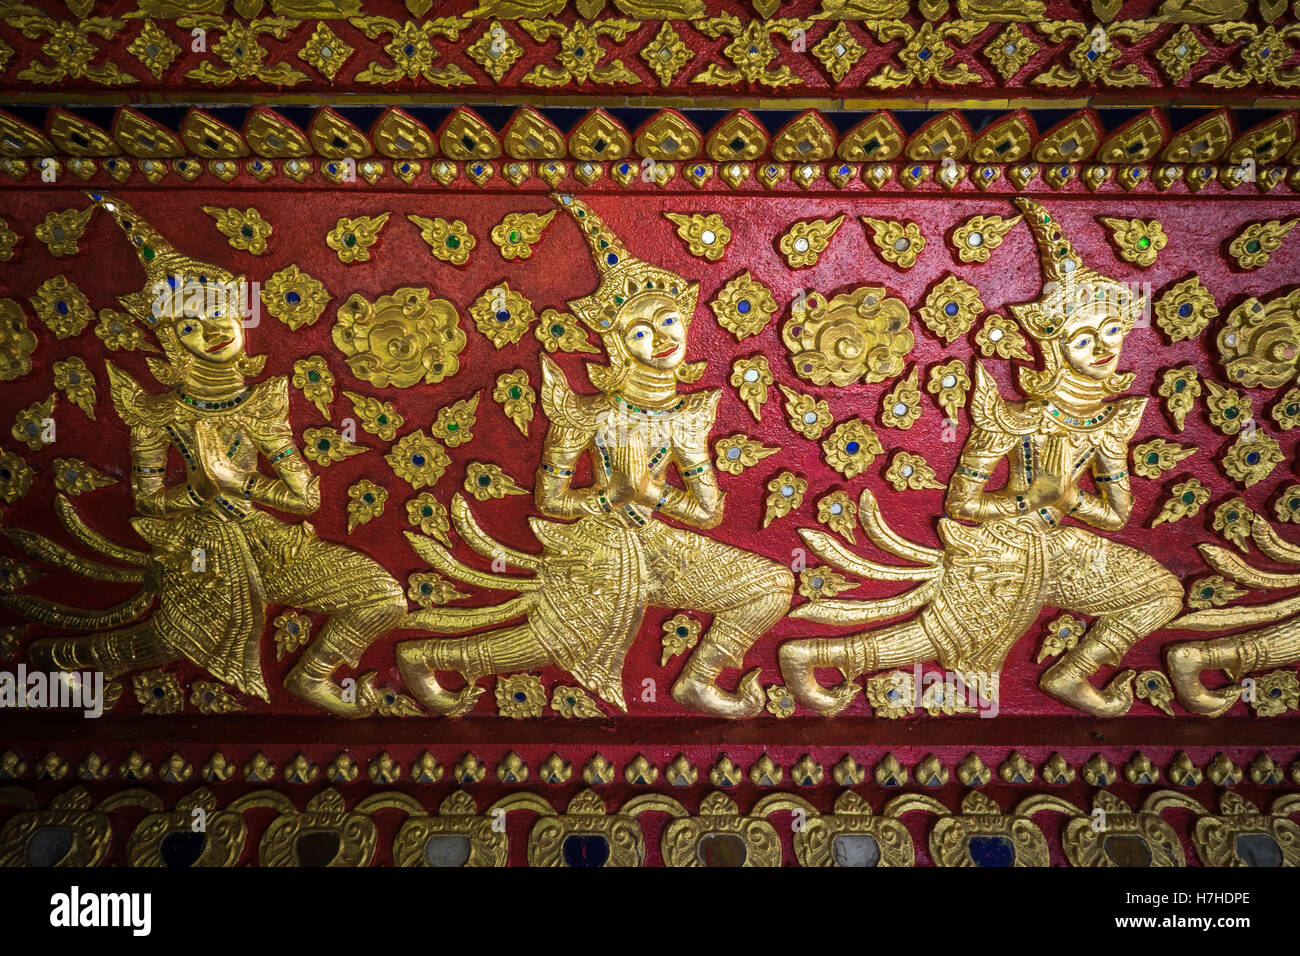 Detailed painted artwork in the buddhist temple, Wat Suan Dok in Chiang Mai, northern Thailand. - Stock Image